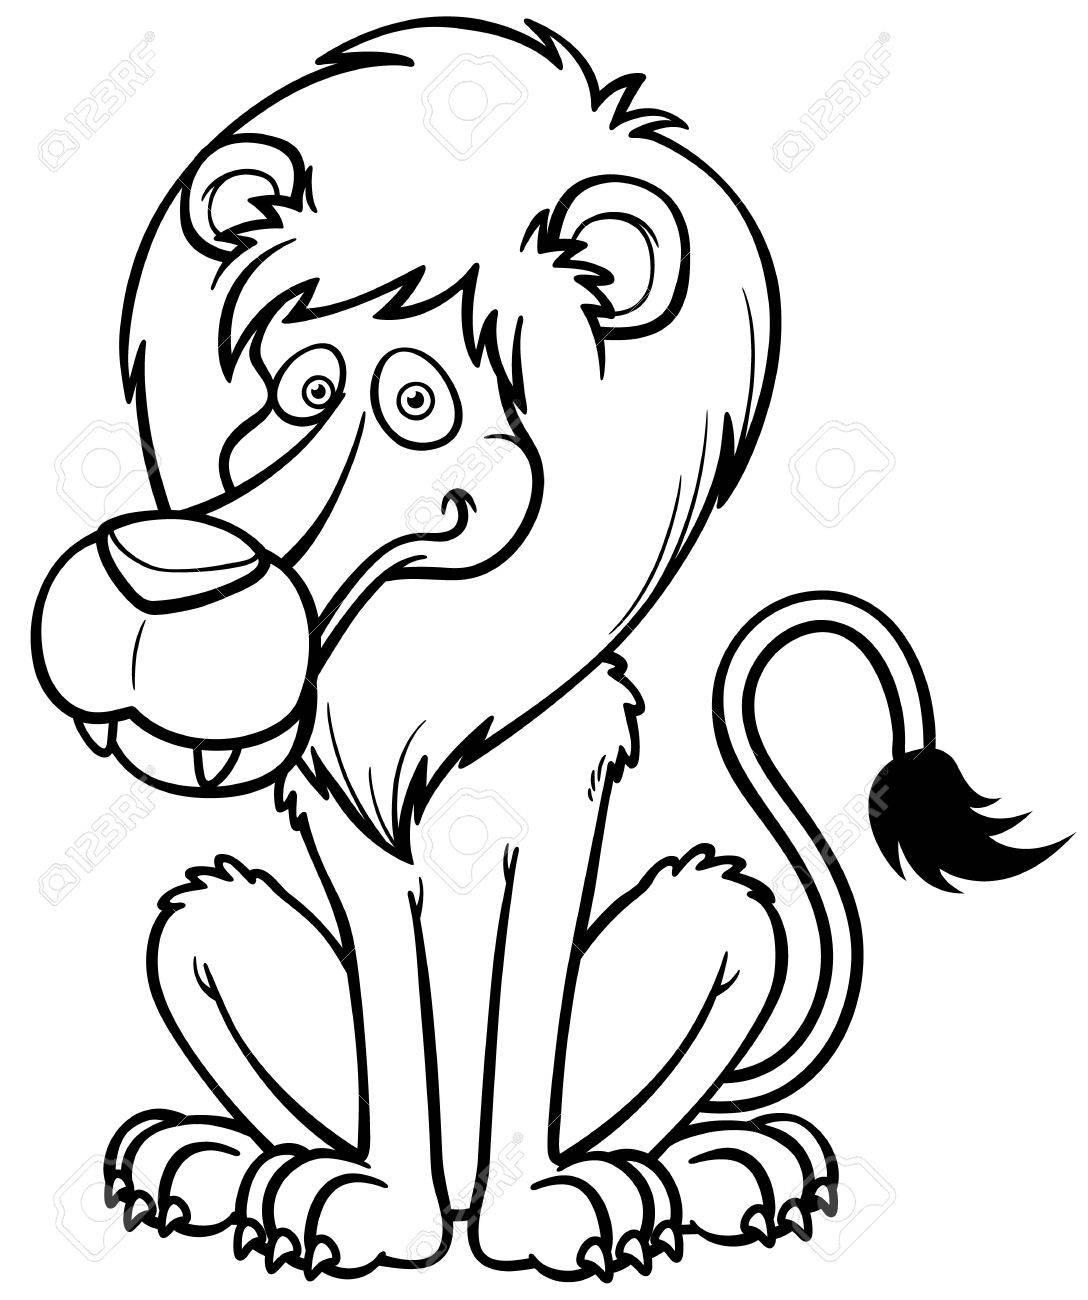 vector illustration of lion cartoon coloring book royalty free